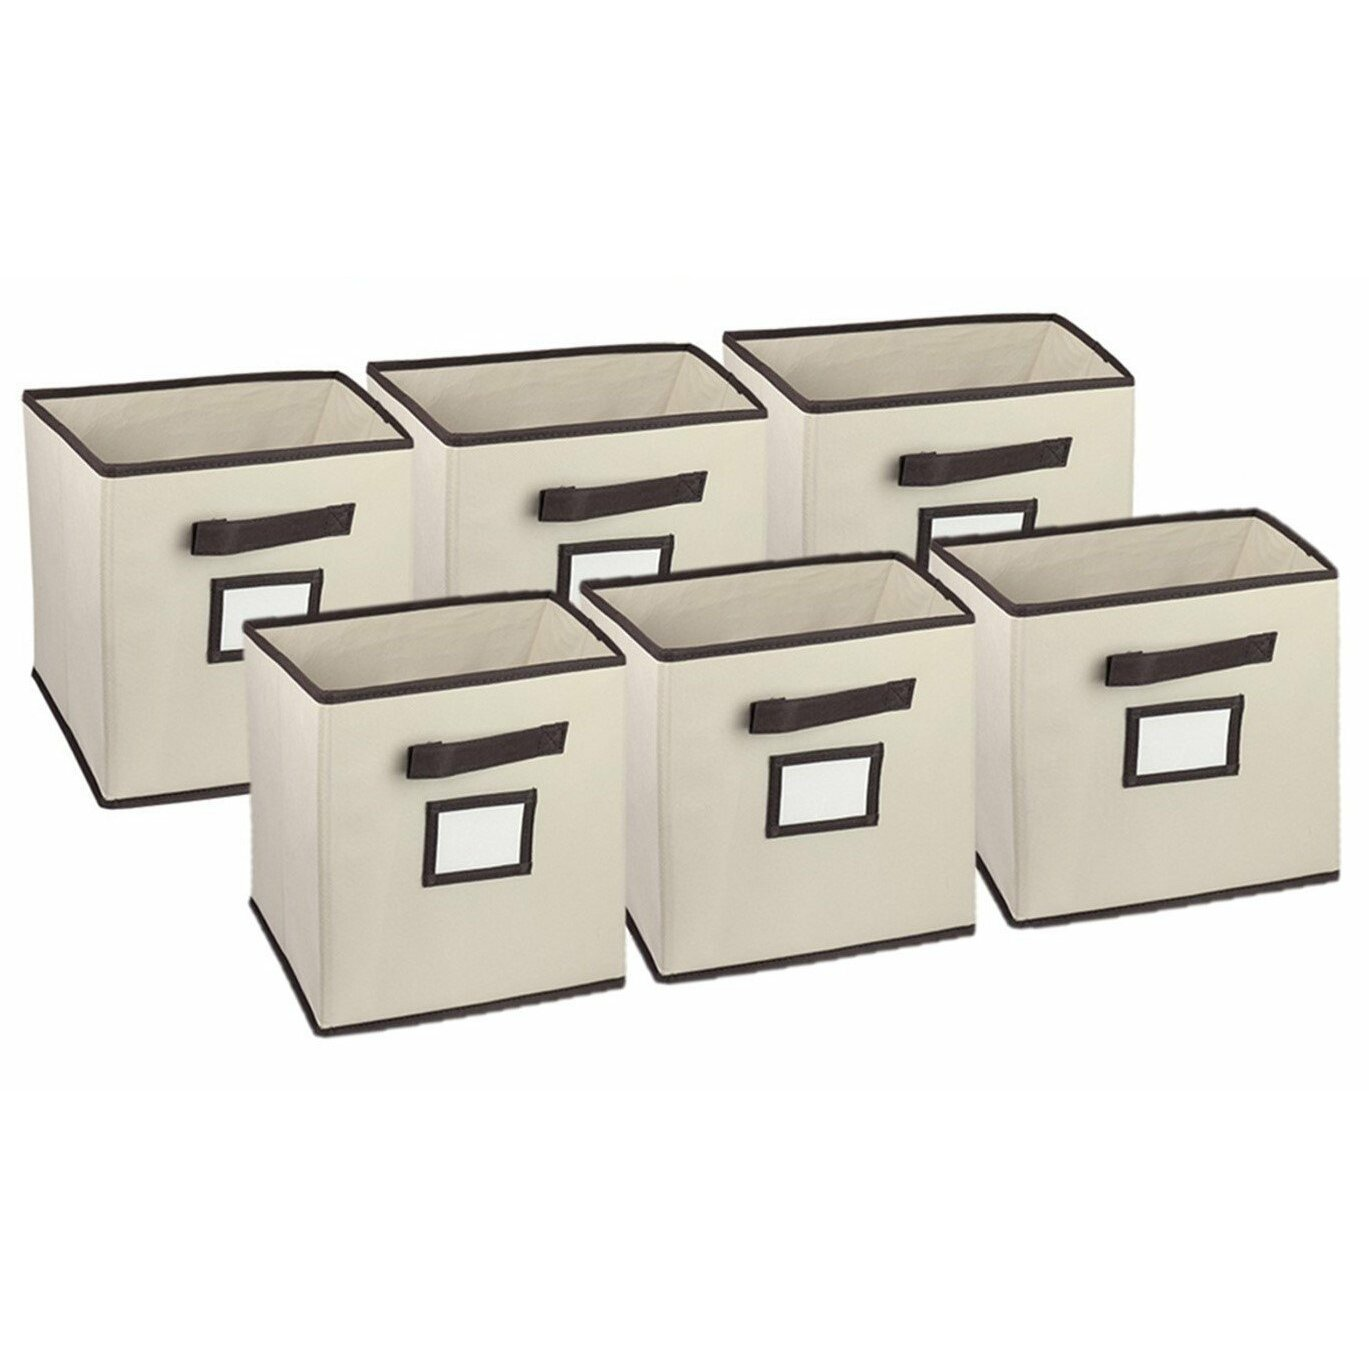 Hangorize Collapsible Fabric Cubicle Storage Bin With